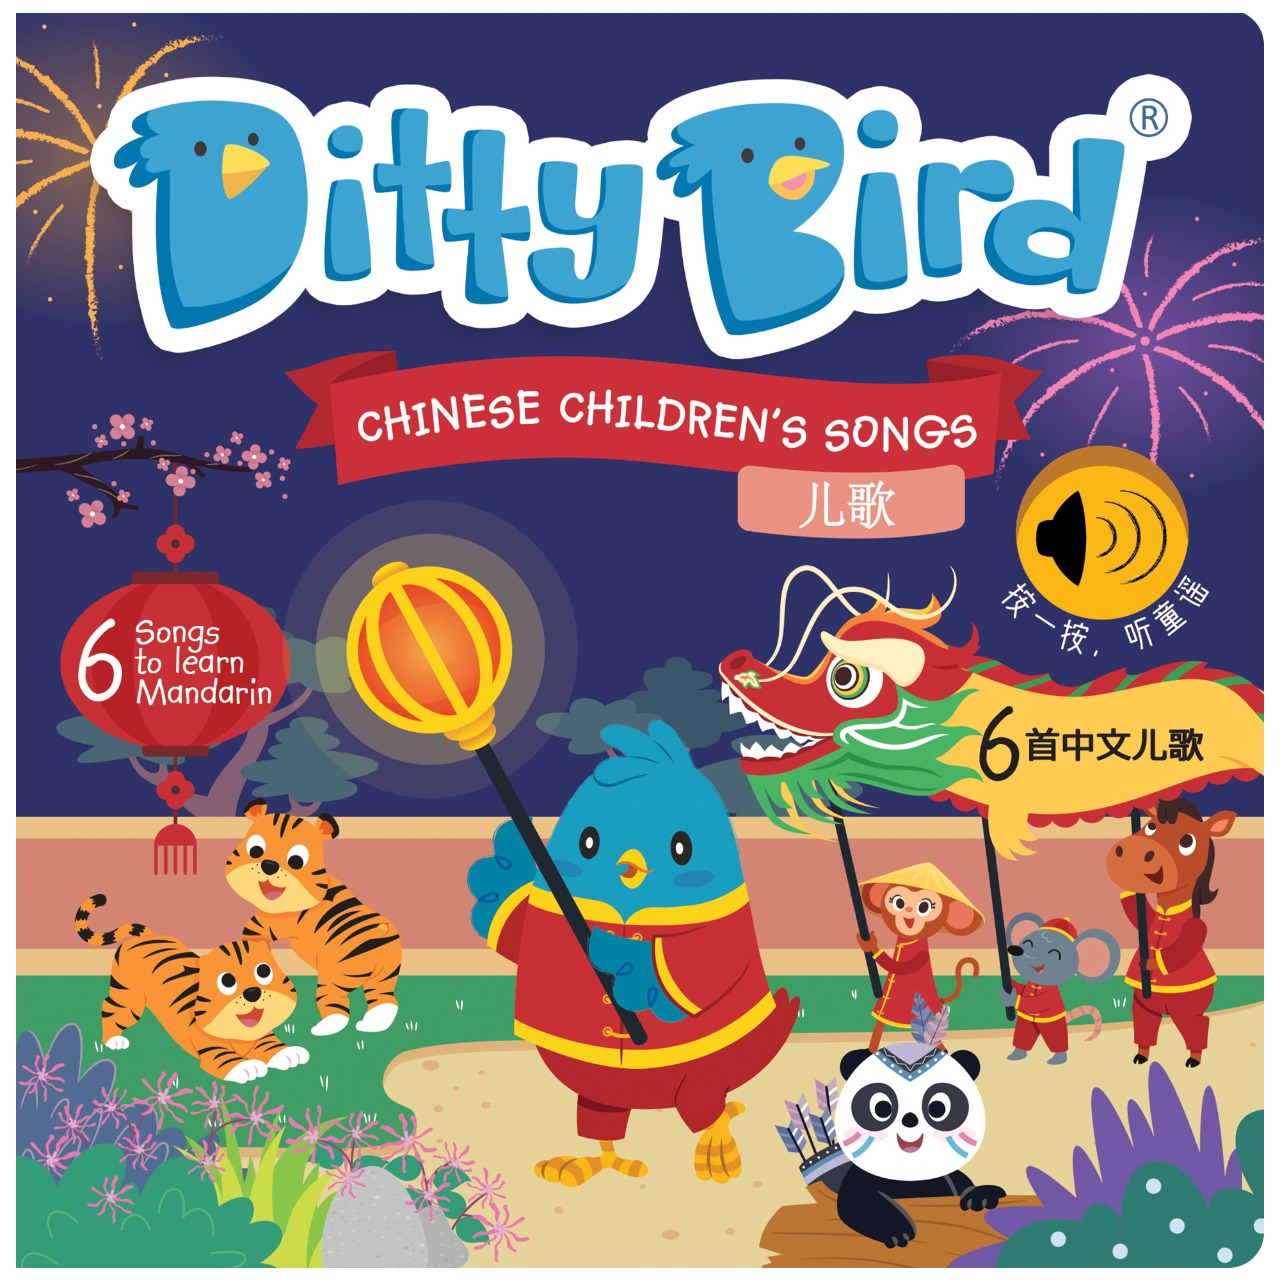 COMING SOON! DITTY BIRD: Chinese Children's Songs in Mandarin